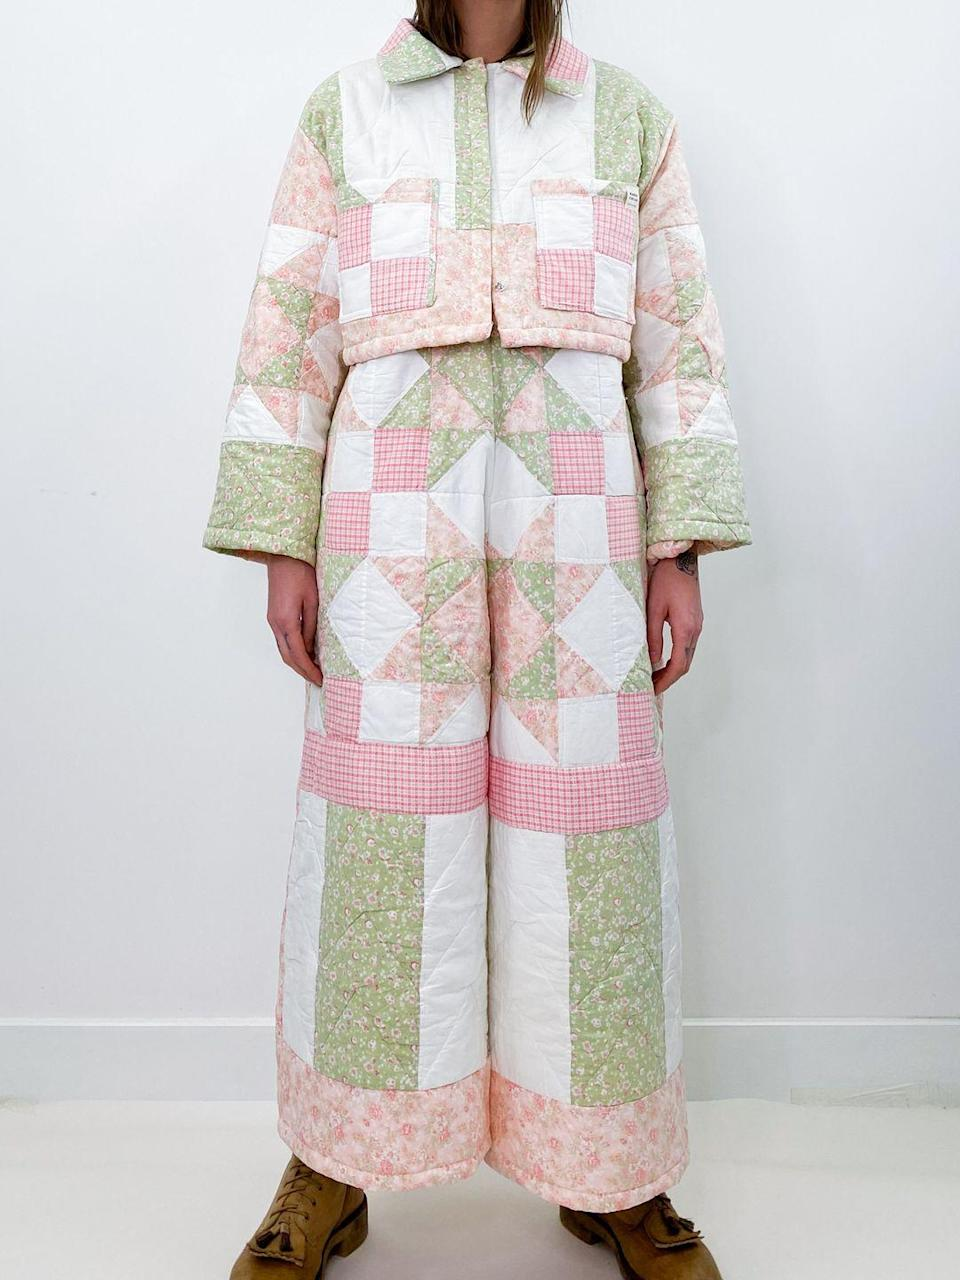 """<p>'Magpie is lovingly sourced and curated, avant garde, true, premium vintage, with every item being hand selected by myself,' Magpie Vintage owner Alice Lockspeiser told ELLE UK.</p><p>'I hugely believe in repurposing and salvaging and have recently launched my quilt and crotchet collections, turning old throws and blankets into wearable clothing and the response has been amazing.'</p><p><a class=""""link rapid-noclick-resp"""" href=""""https://www.magpievintageclothing.com/"""" rel=""""nofollow noopener"""" target=""""_blank"""" data-ylk=""""slk:SHOP MAGPIE VINTAGE NOW"""">SHOP MAGPIE VINTAGE NOW</a></p>"""